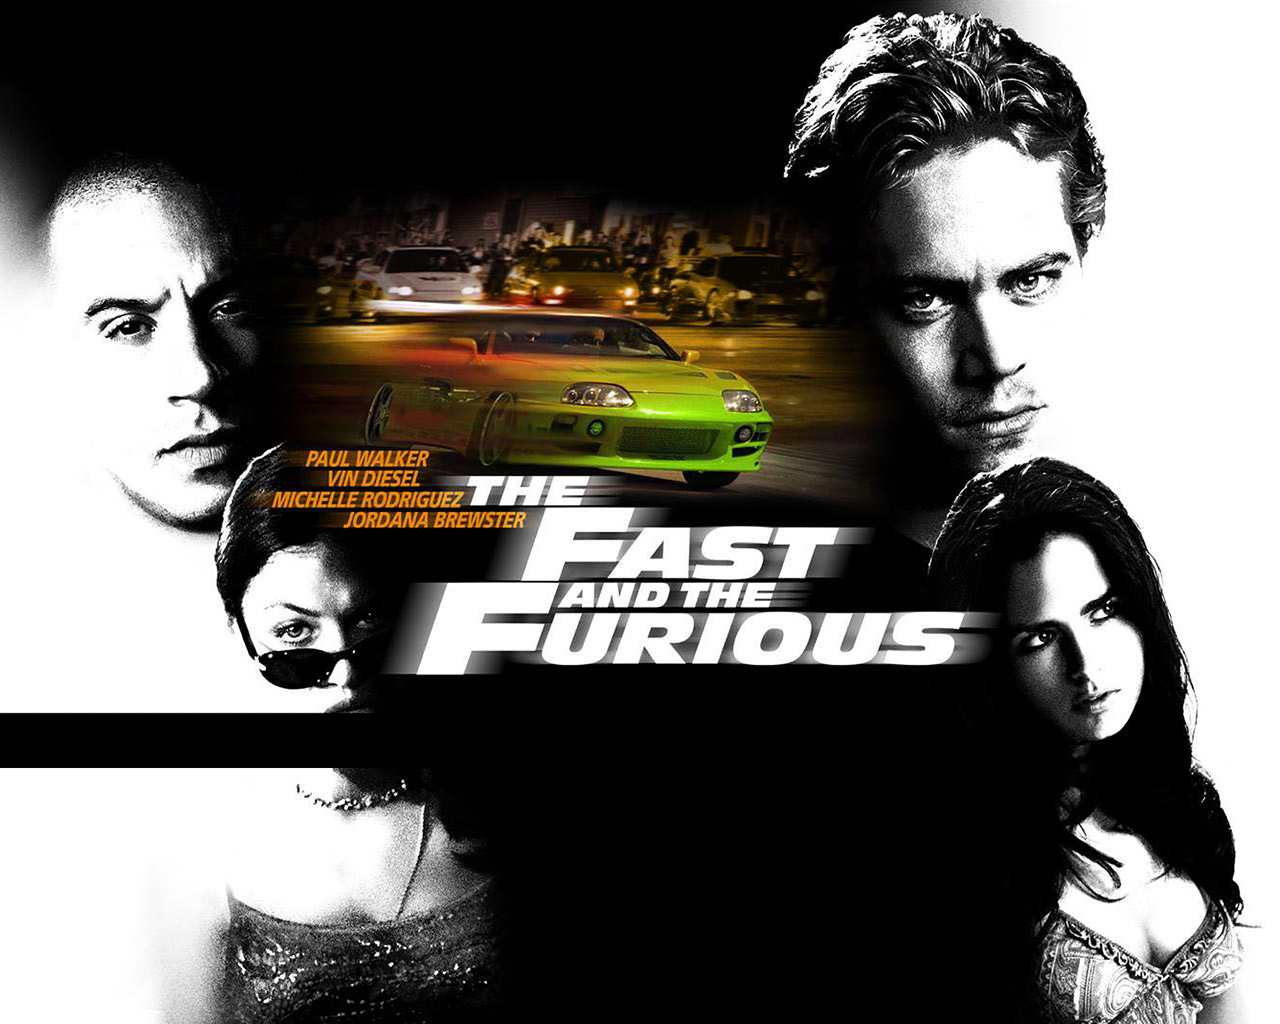 fast and furious 1 full movie free download in english